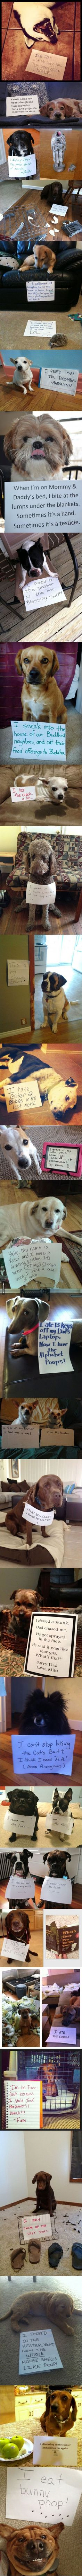 Its not people, but nothing makes me laugh harder than dog shaming